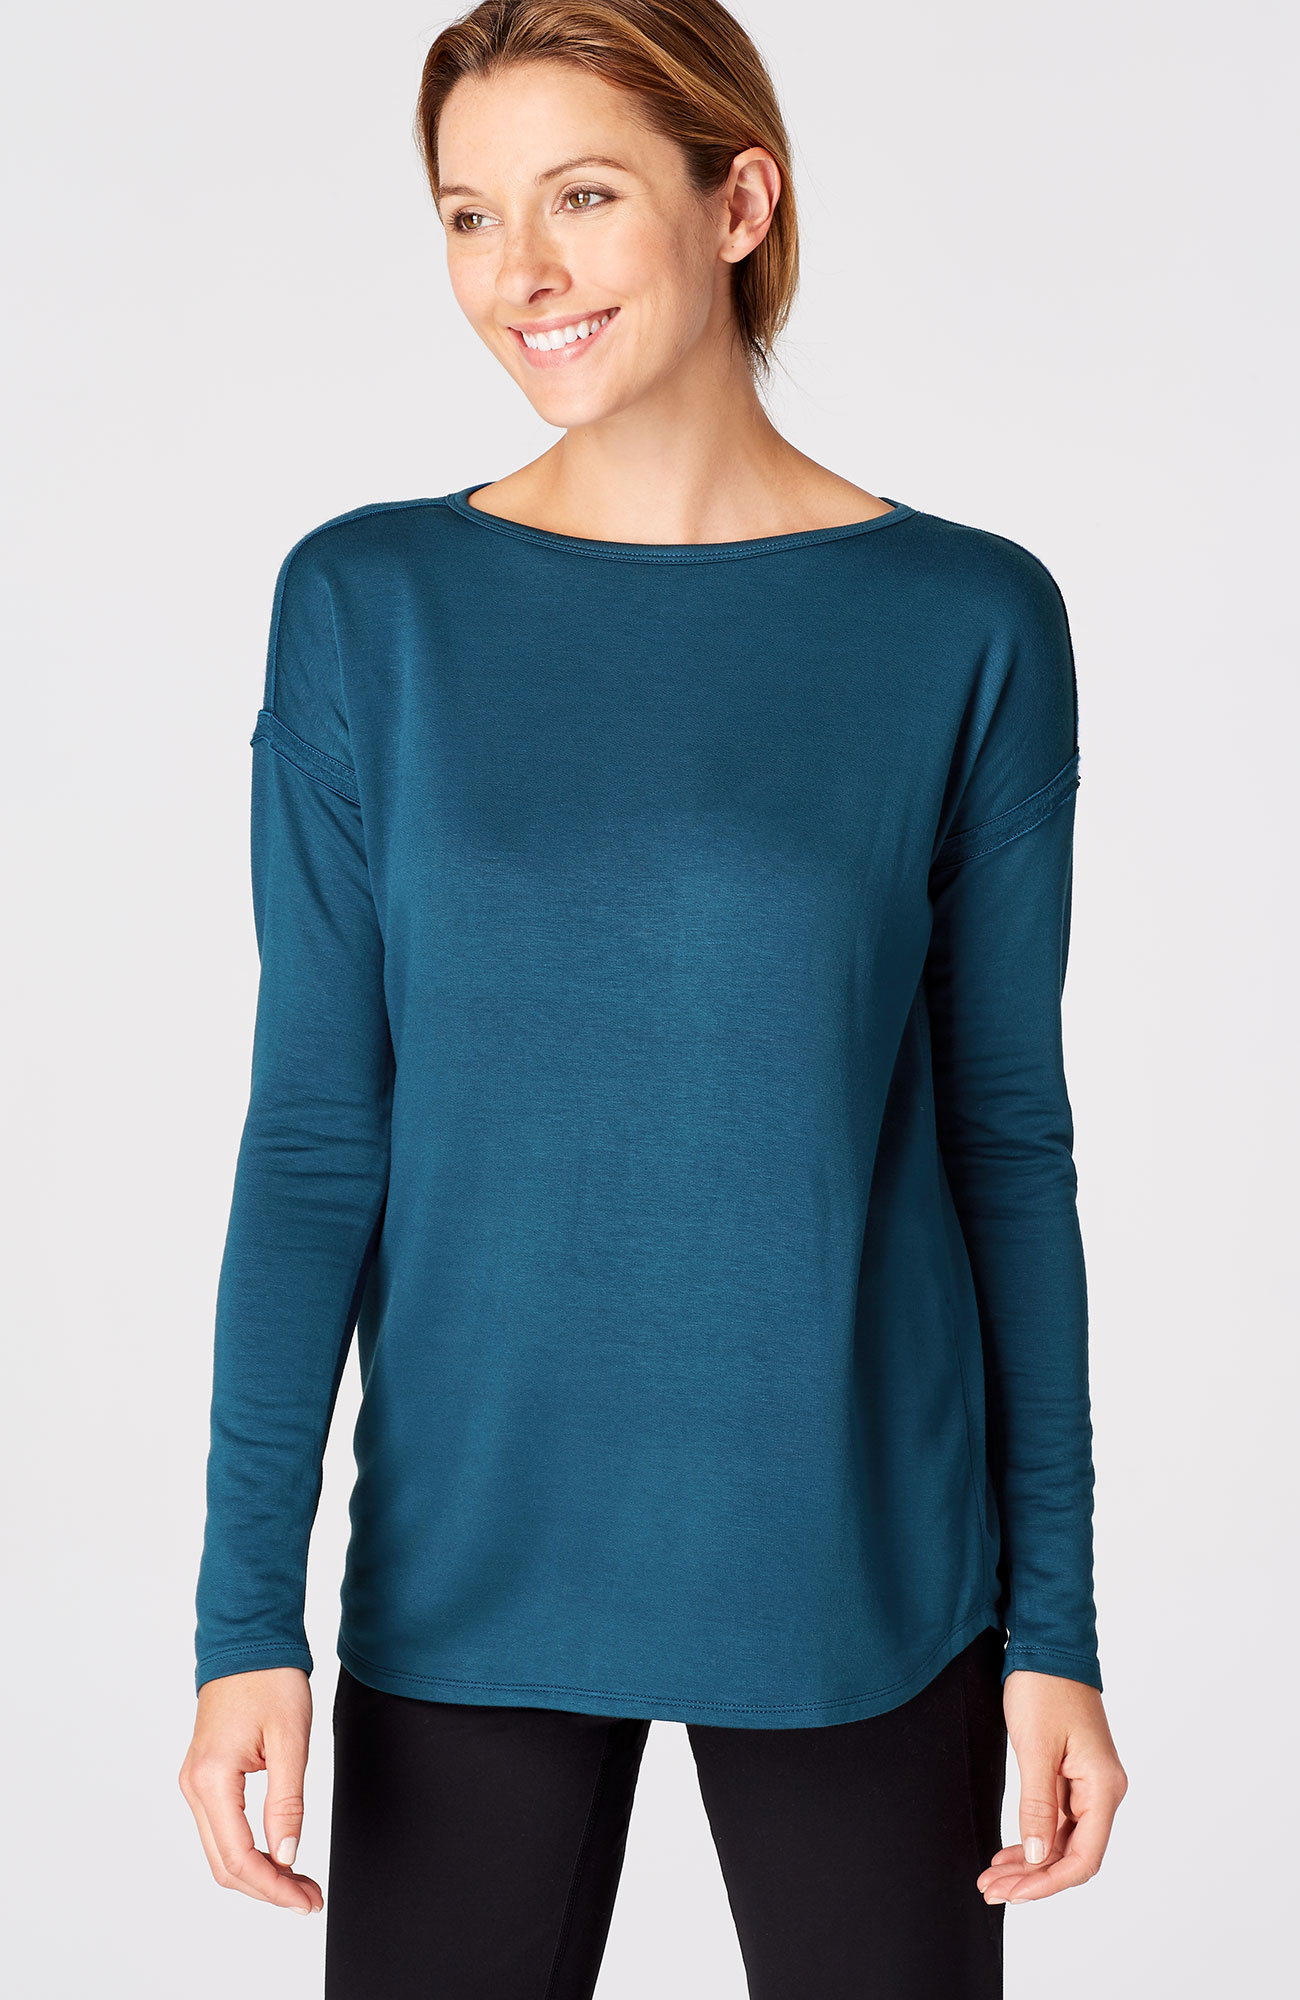 Pure Jill Fit relaxed top